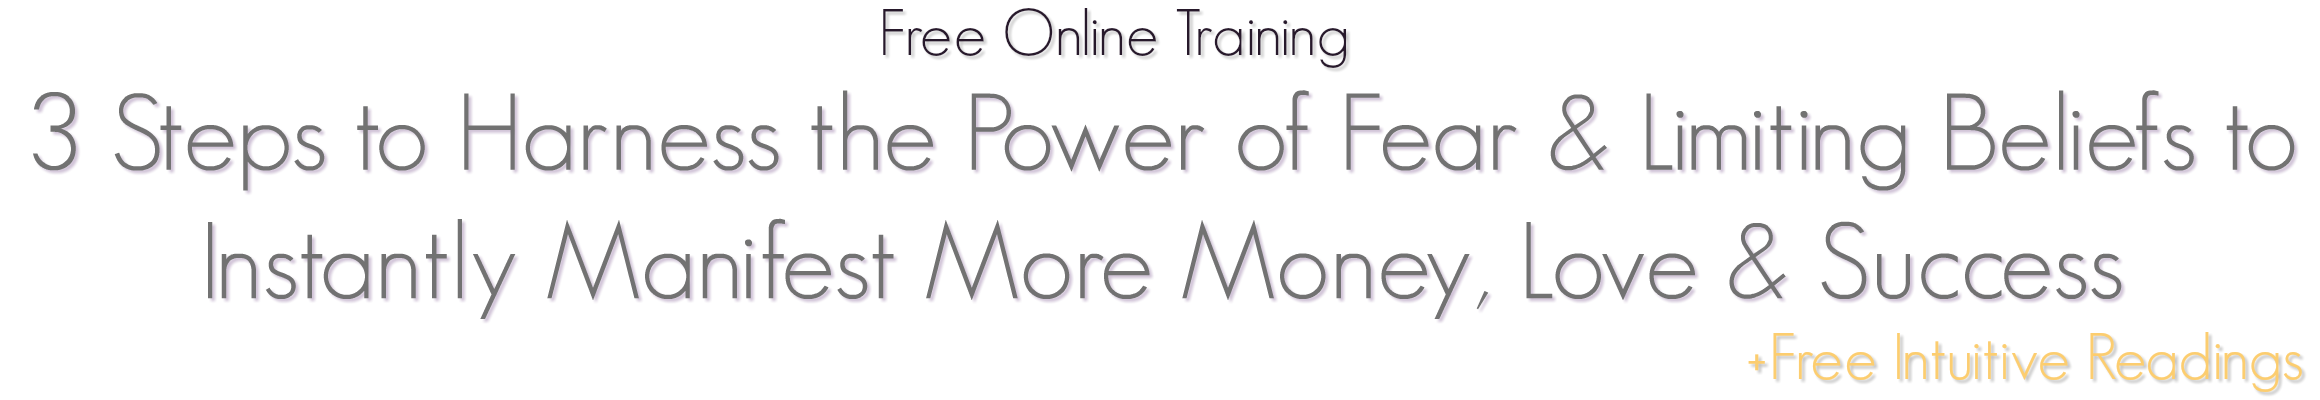 Harness the Power of Fear Free Training